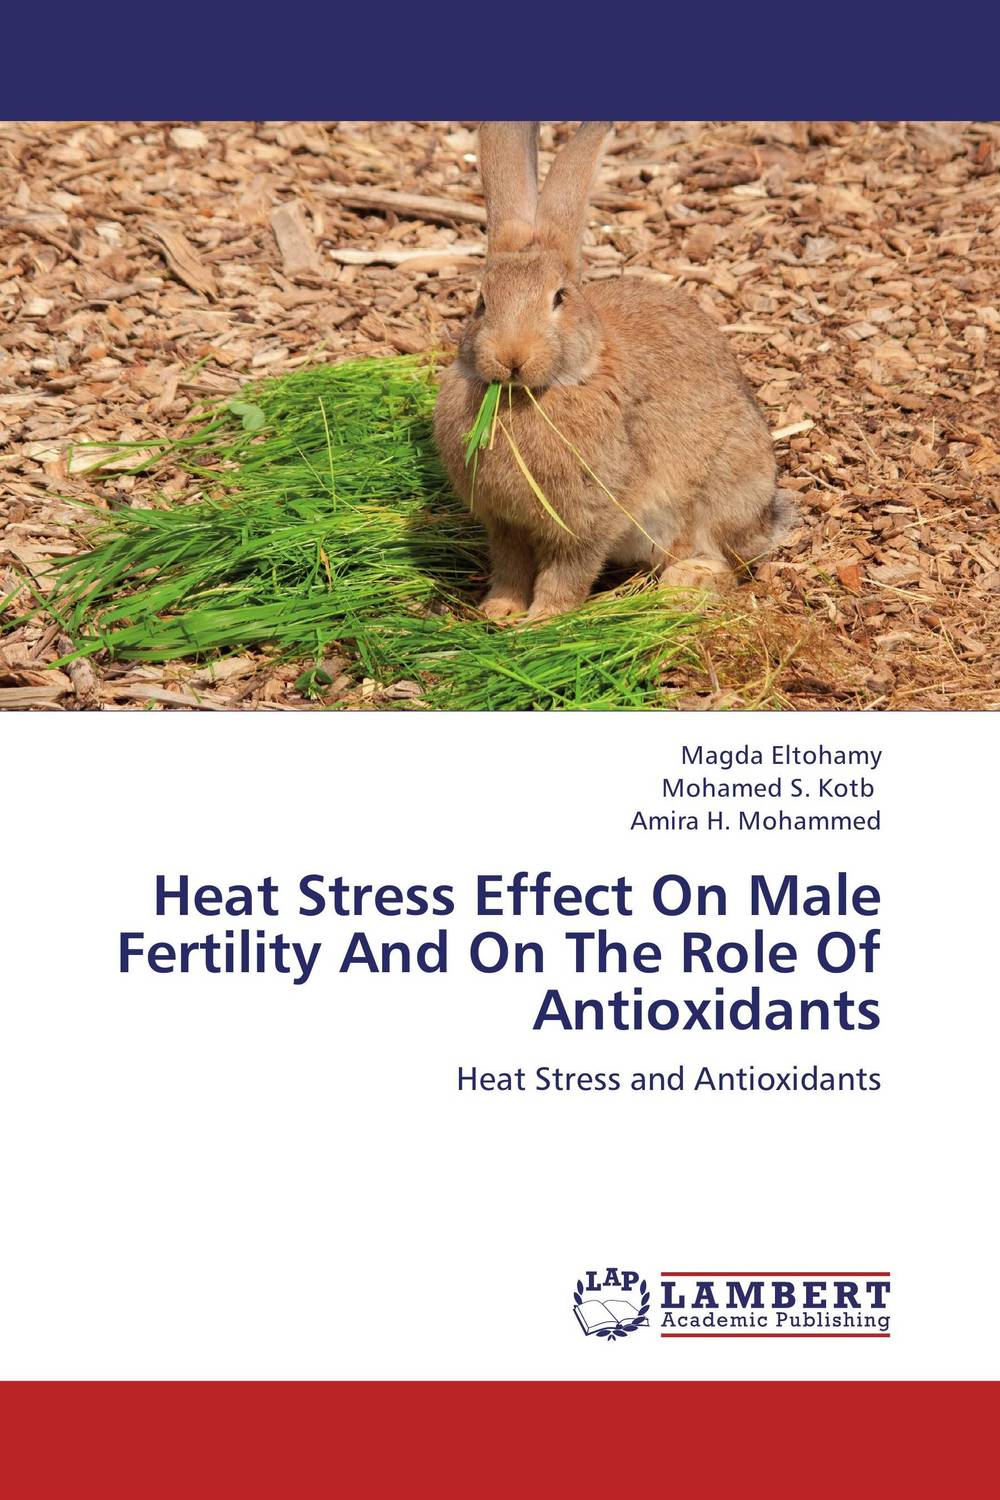 Heat Stress Effect On Male Fertility And On The Role Of Antioxidants